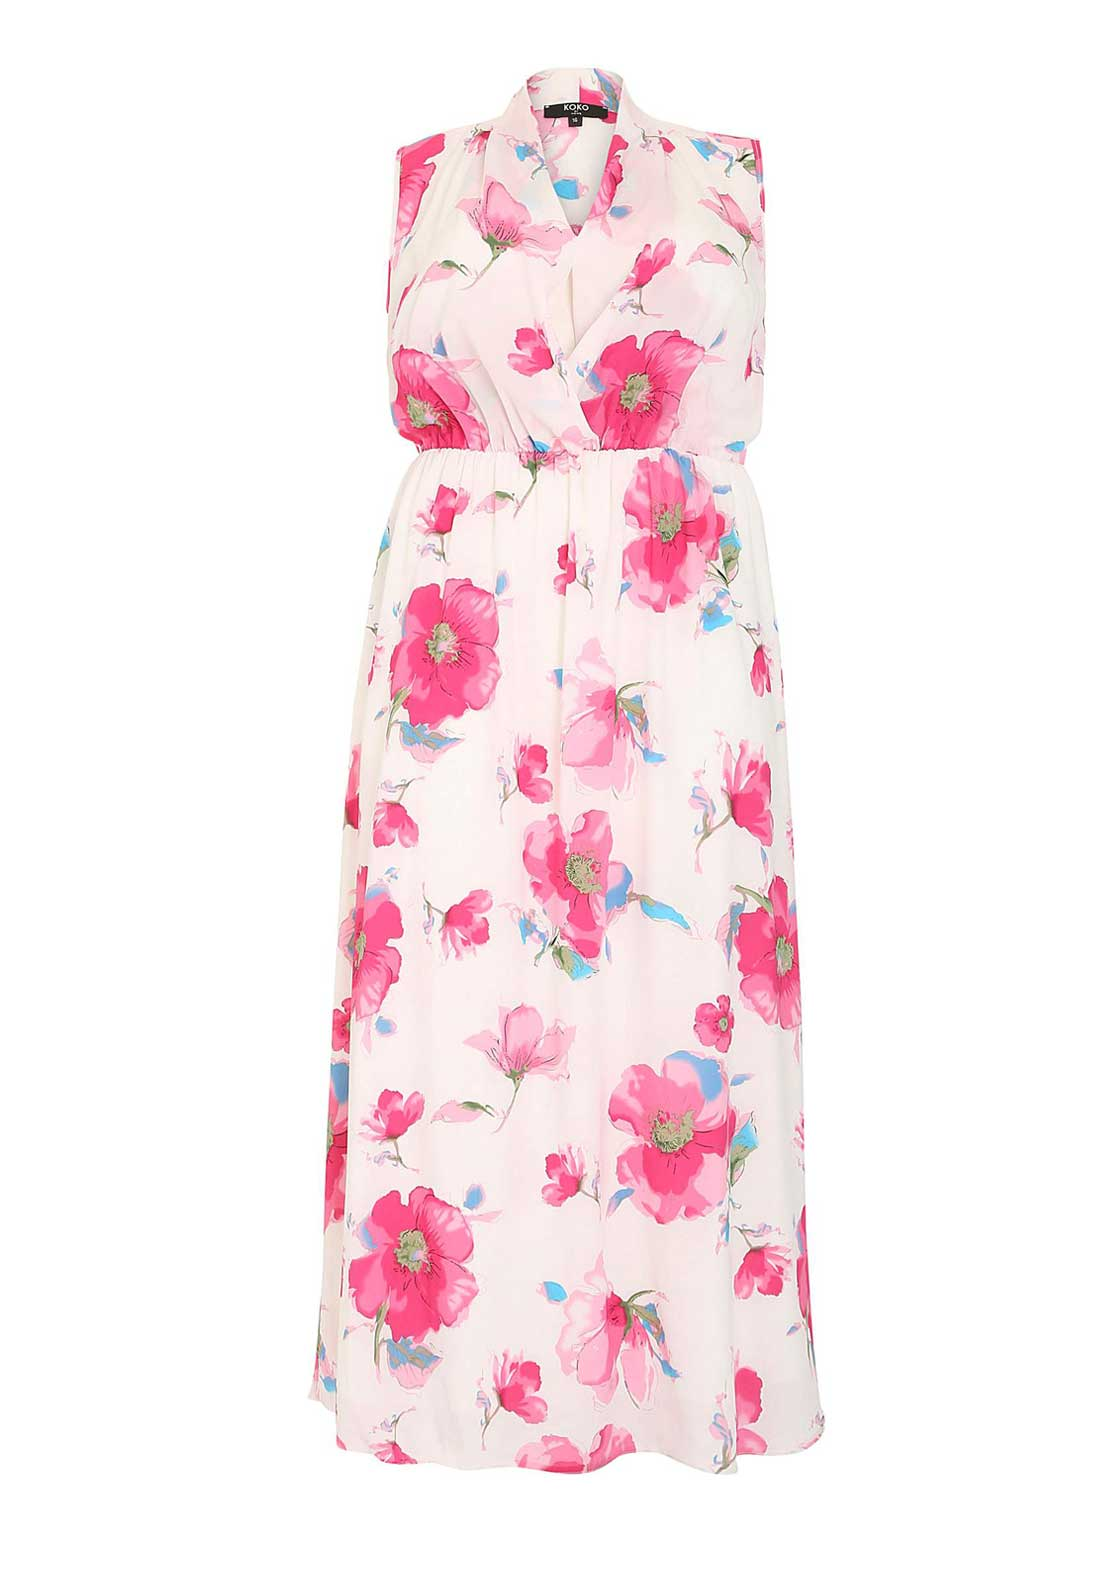 Lovedrobe Floral Print Maxi Dress, White and Pink